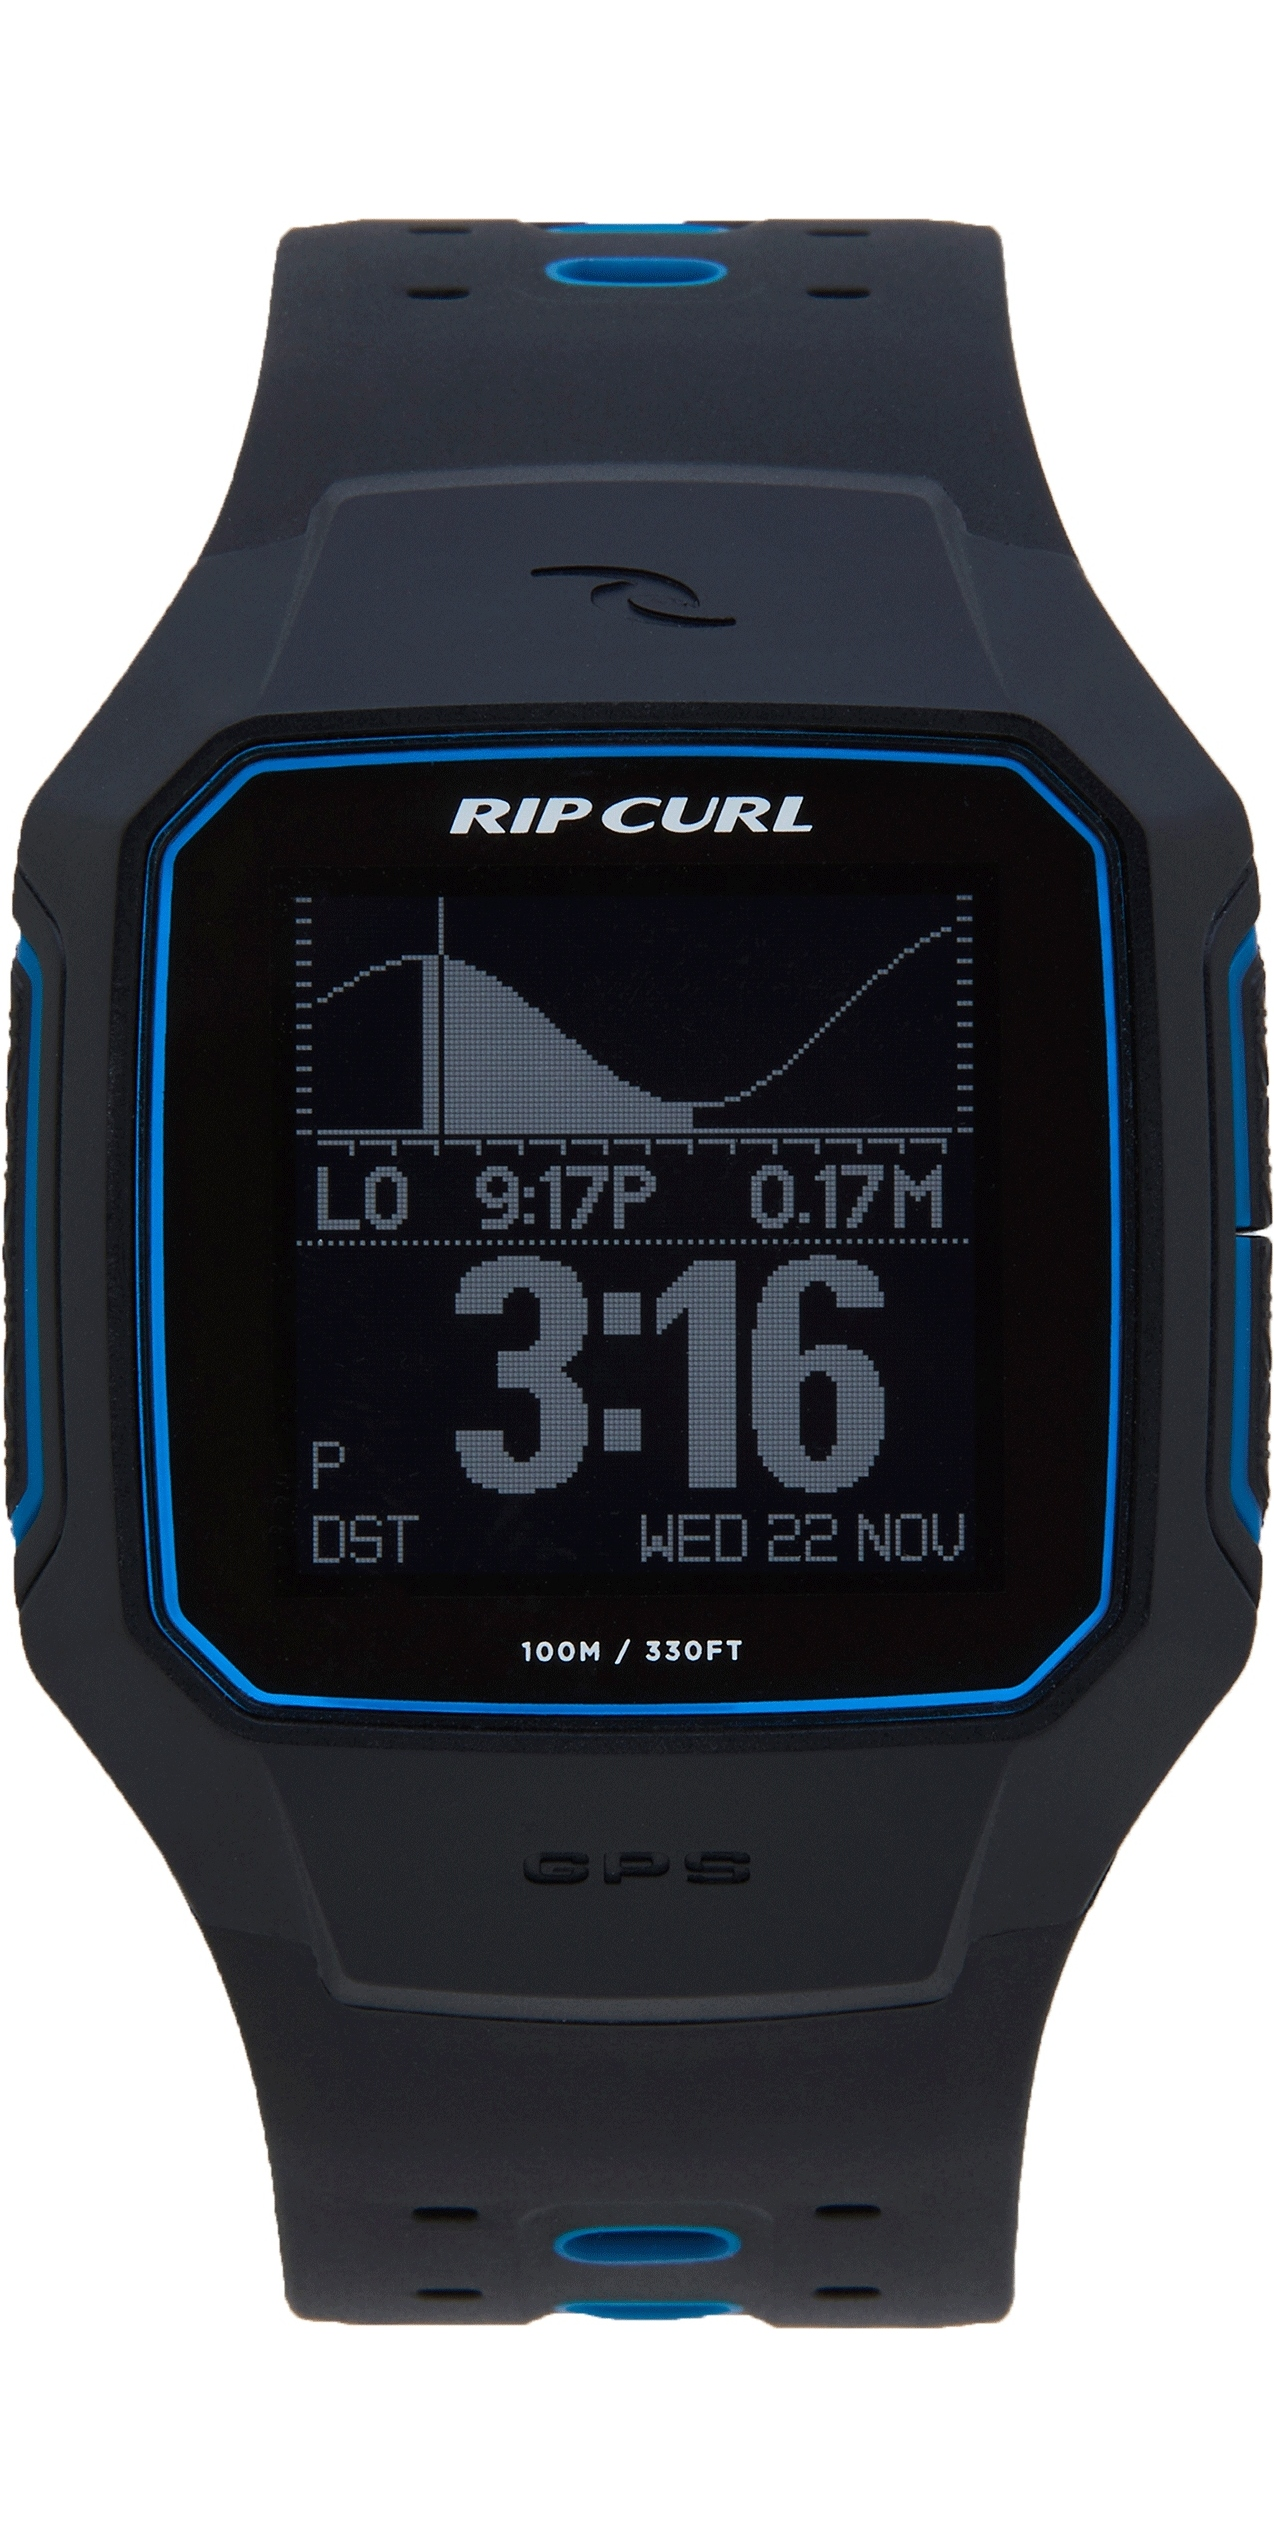 2019 Rip Curl Curl Search GPS Series 2 Smart Surf Watch Blue A1144